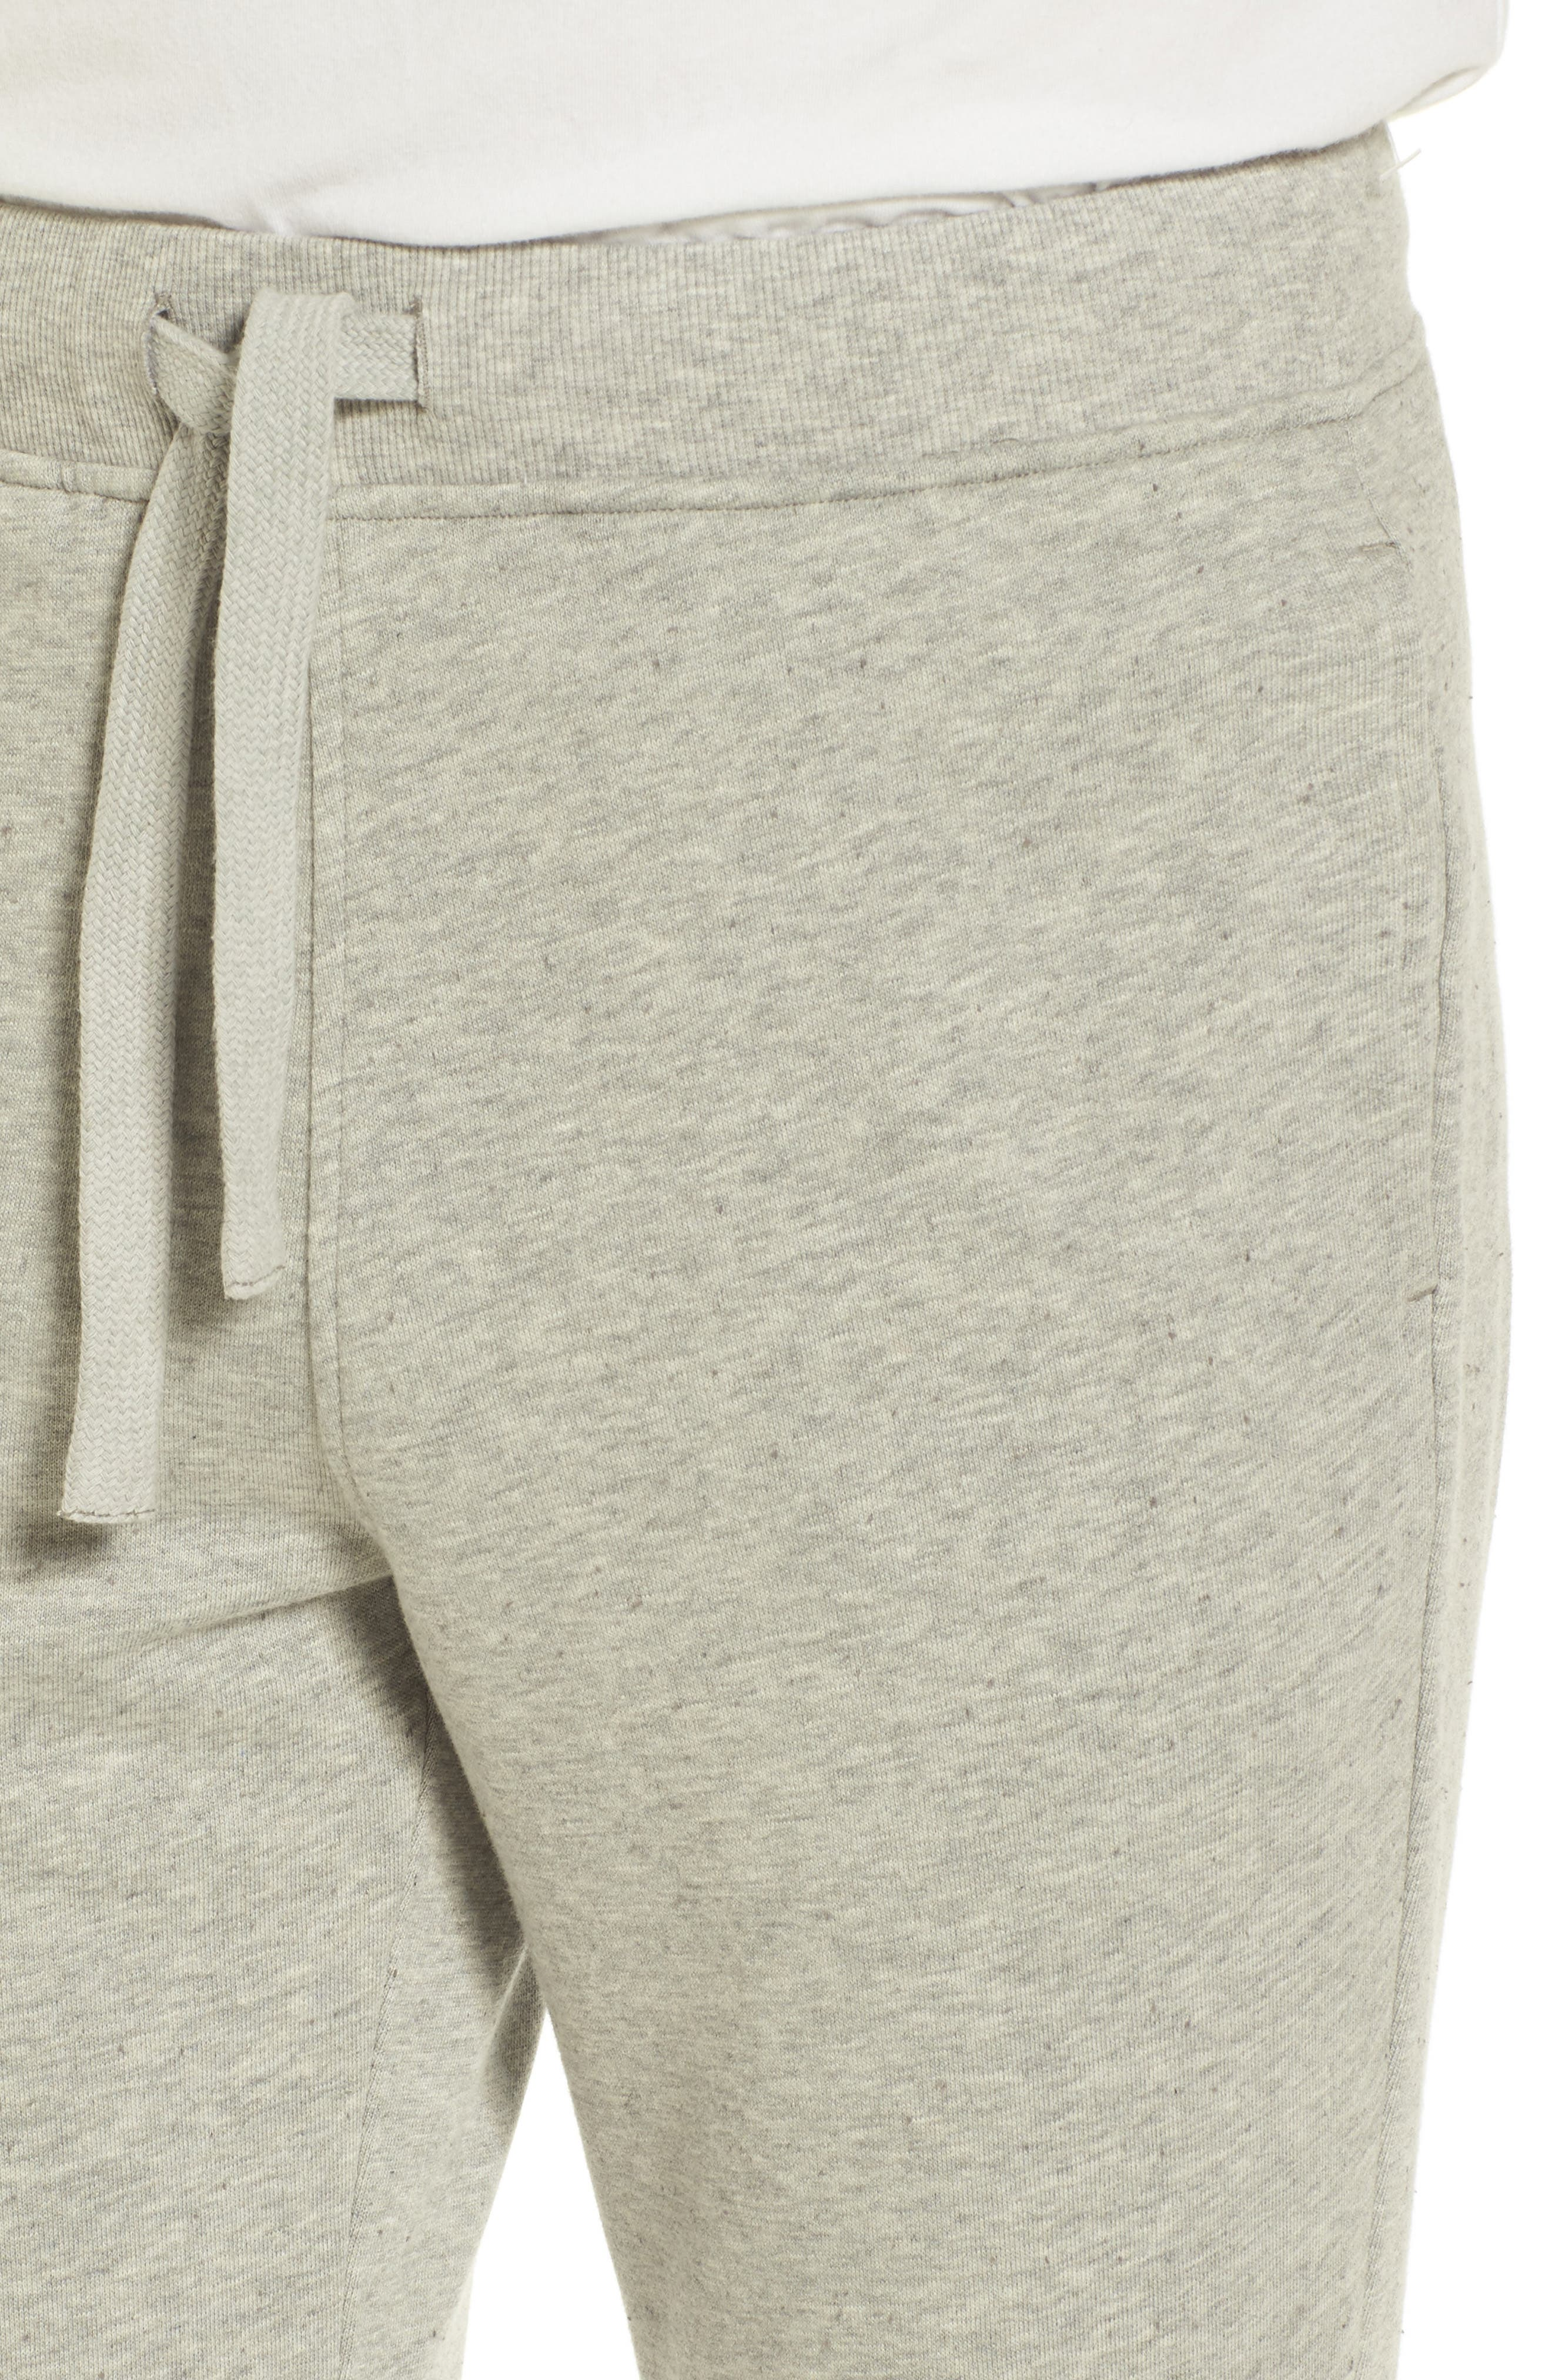 Wyatt Terry Cotton Blend Lounge Pants,                             Alternate thumbnail 4, color,                             Seal